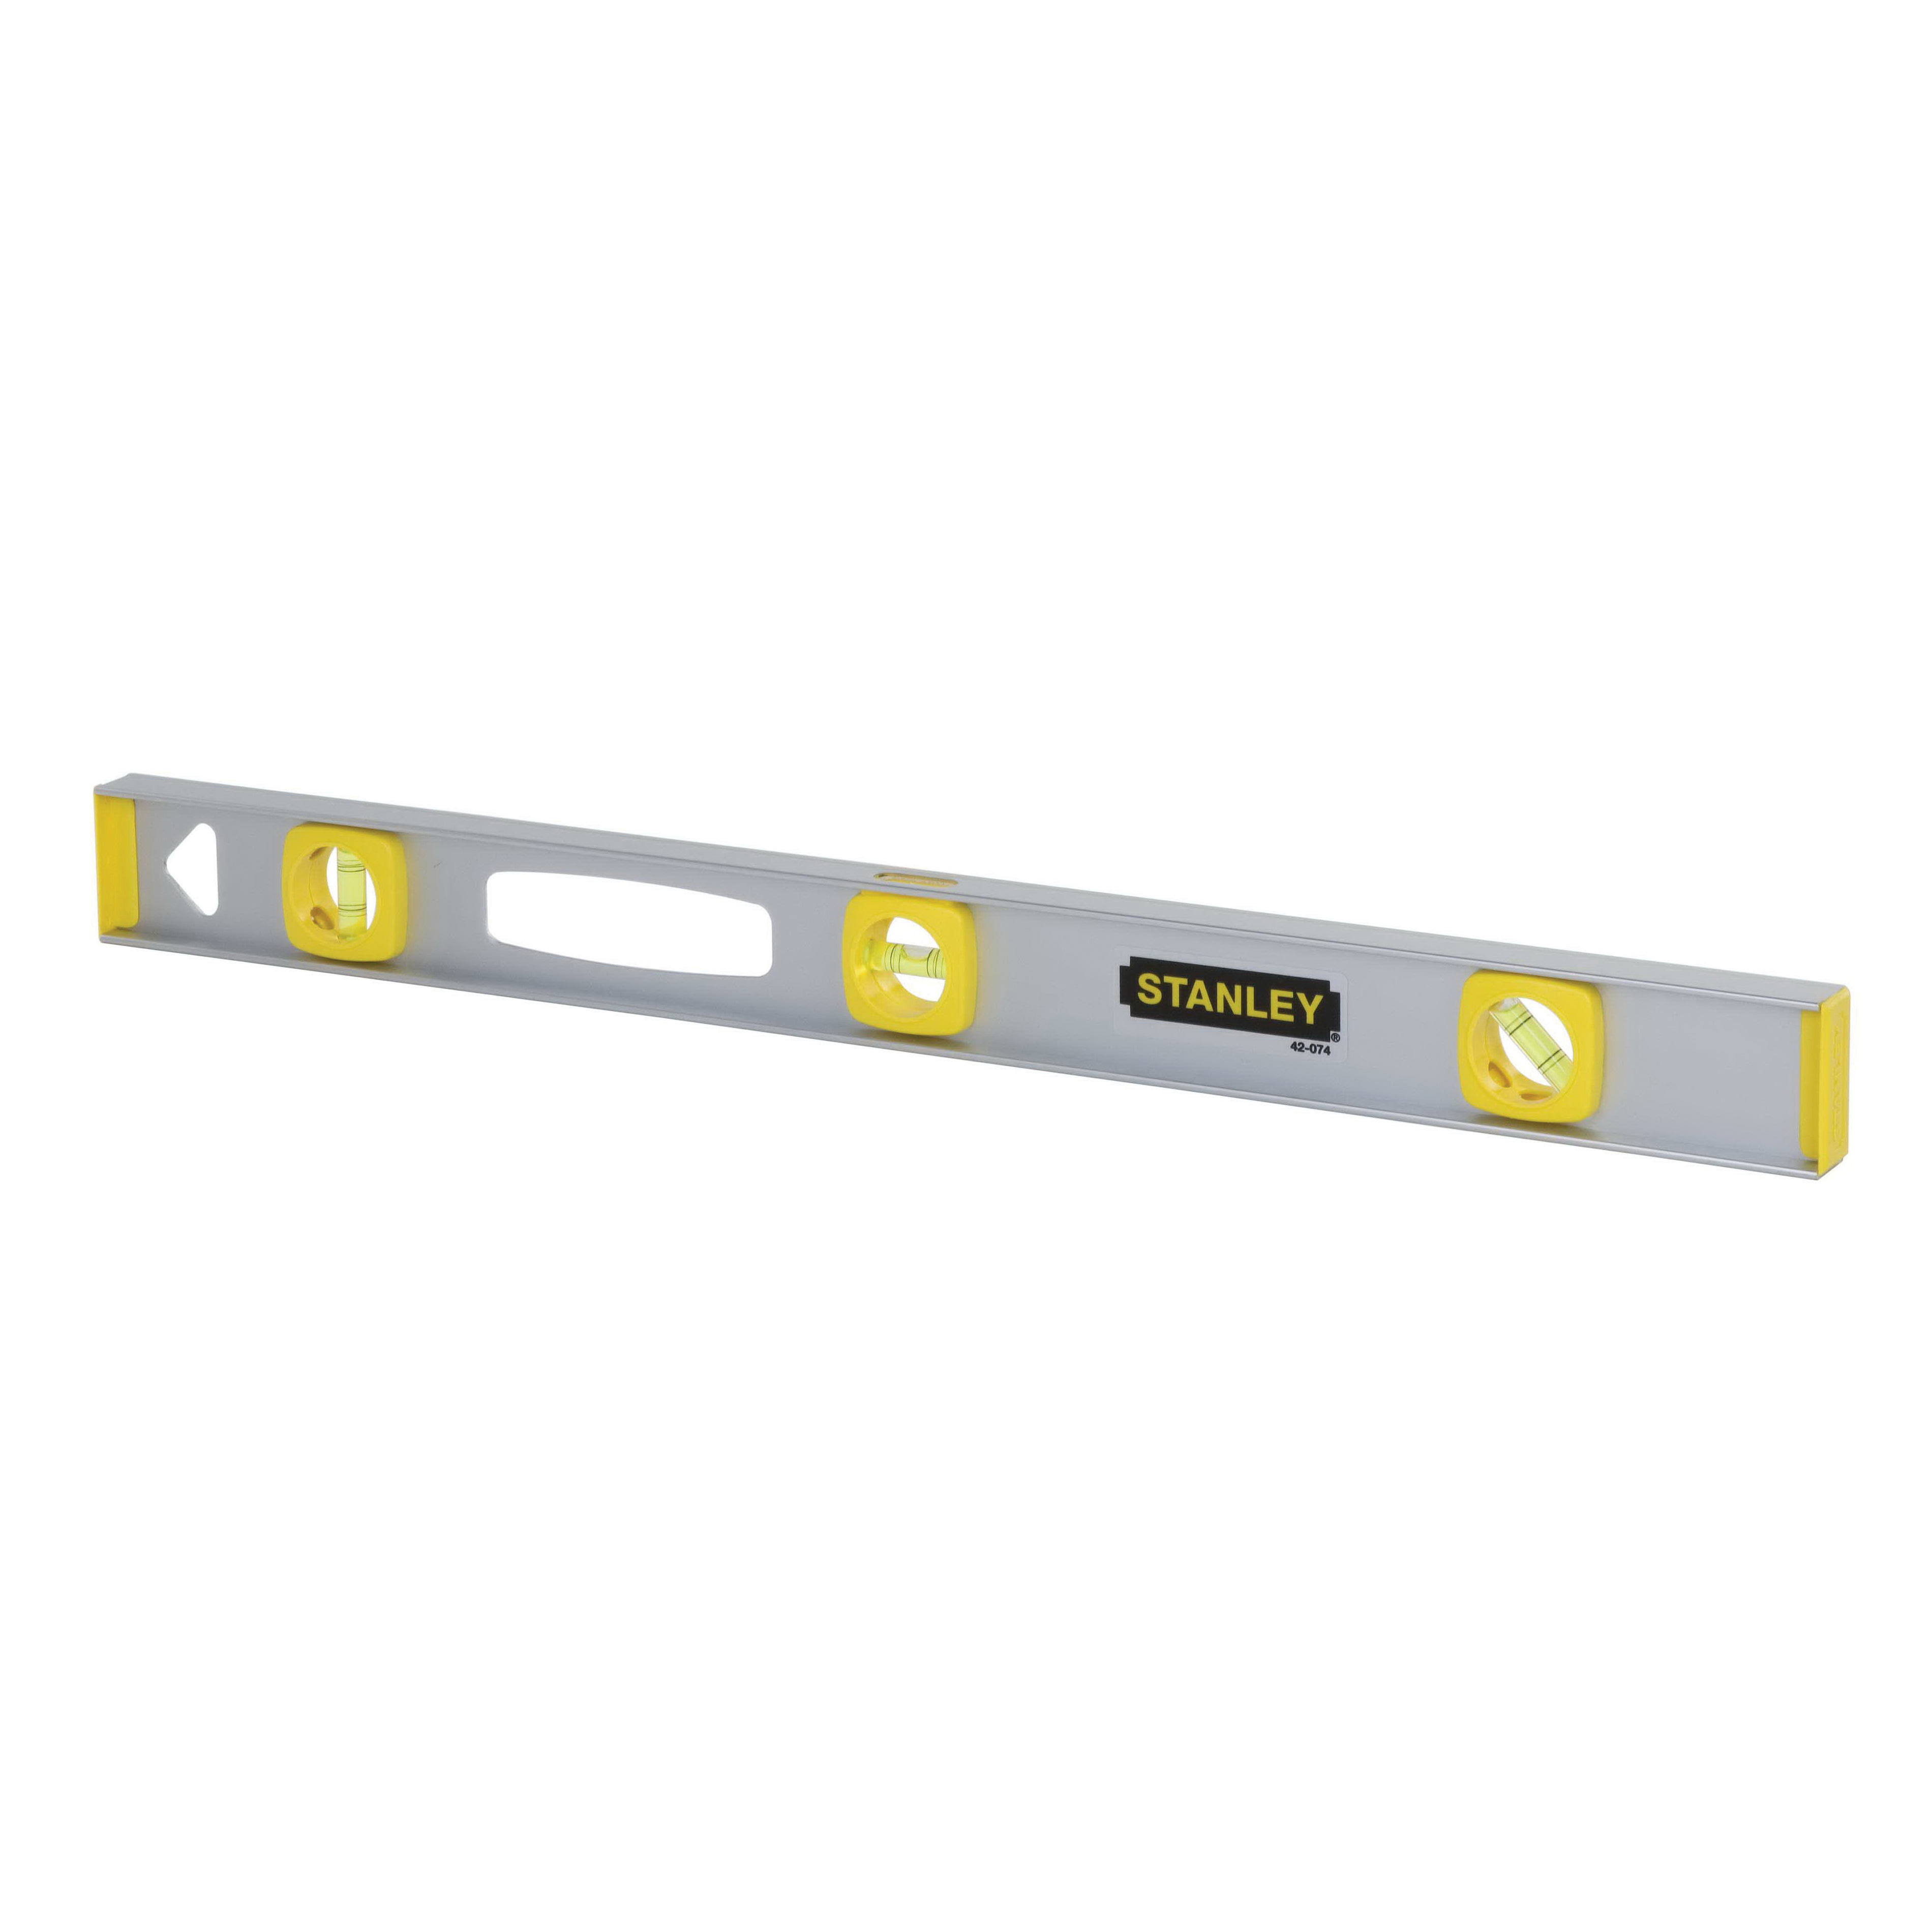 Stanley® 42-076 Flat Base Lightweight I-Beam Level, 48 in L, 3 Vials, (1) Level, (2) Plumb Vial Position, 0.002 in, Aluminum